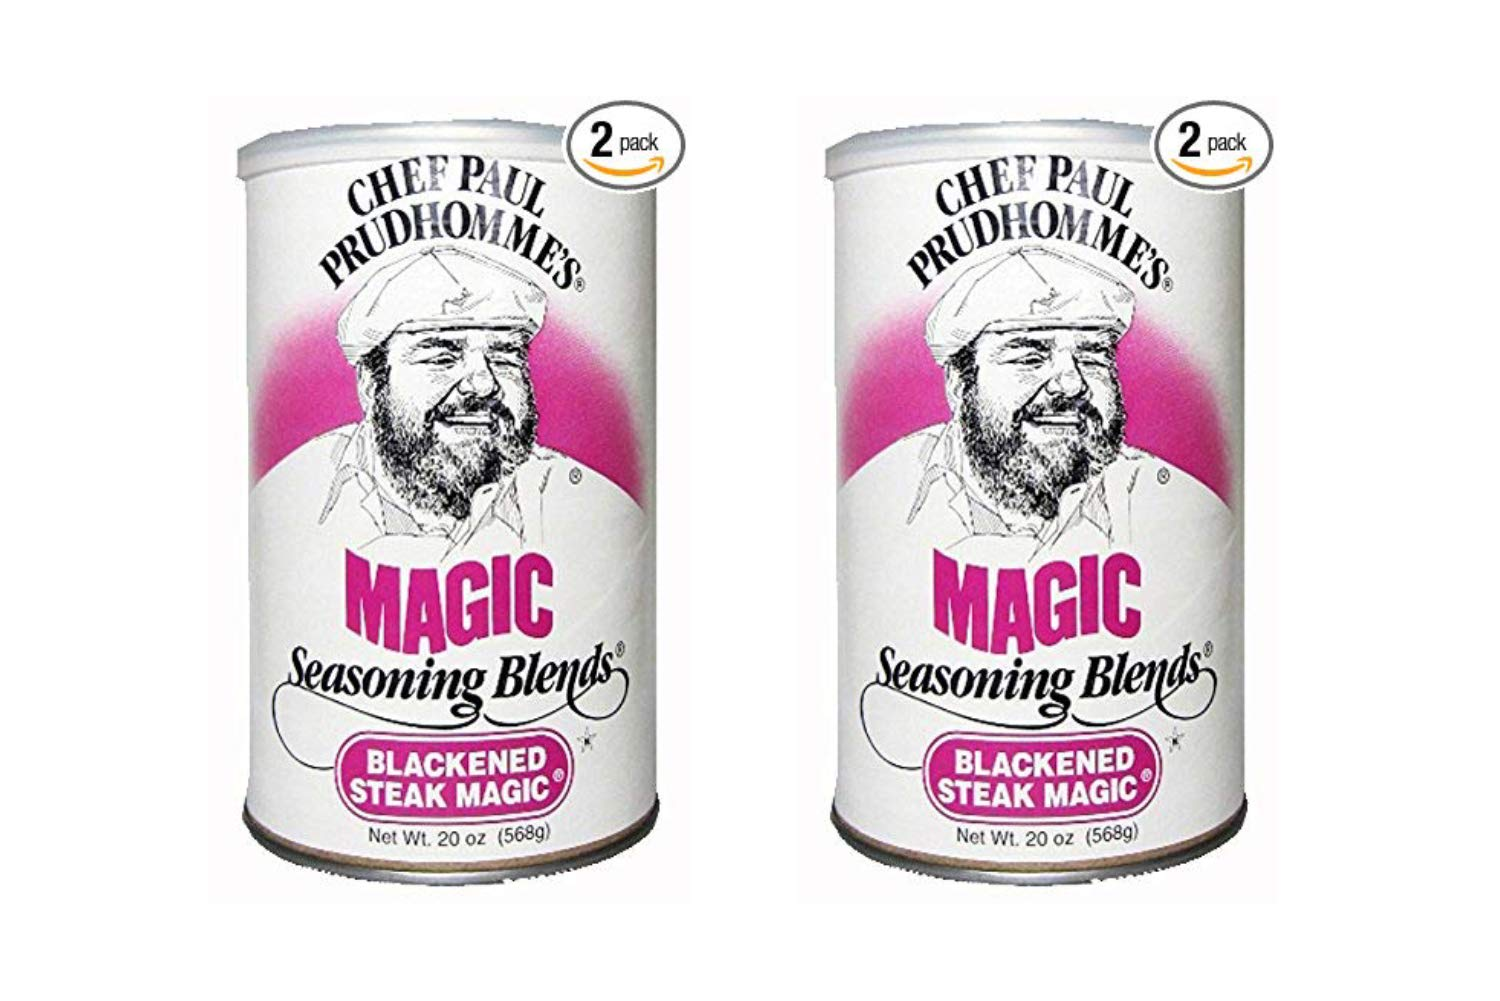 Chef Paul Blackened Steak Magic Seasoning, 20-Ounce Canisters (Pack of 2) (2 Pack)